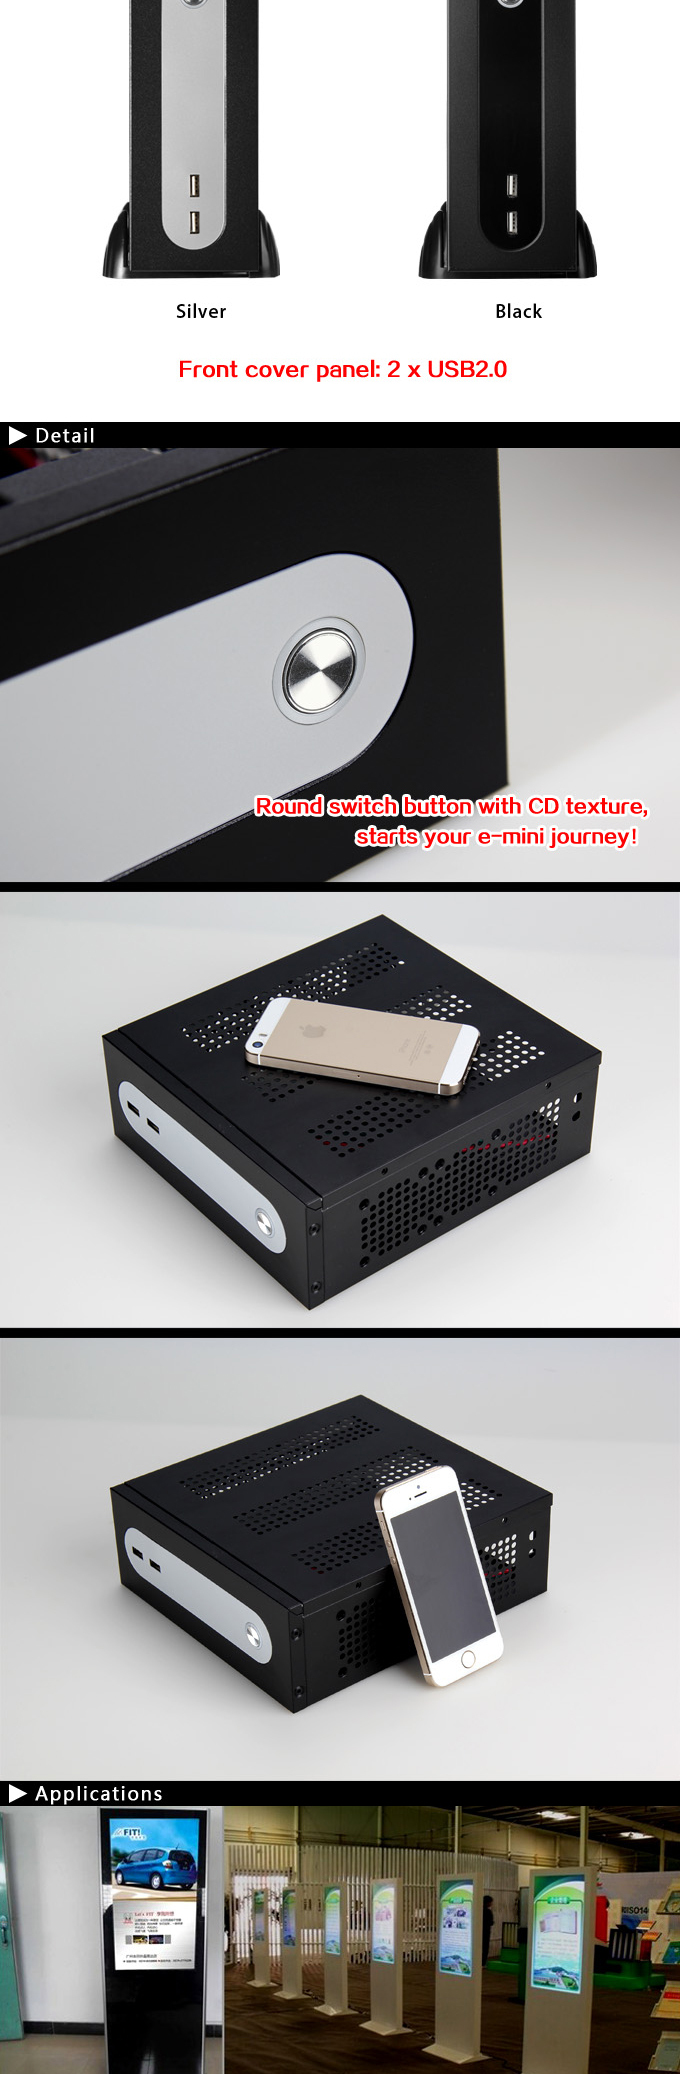 Realan G3 Steel Mini ITX HTPC Case With Power Supply, 2 x WIFI, 6 x COM, 2 x USB2.0 HTPC Chassis